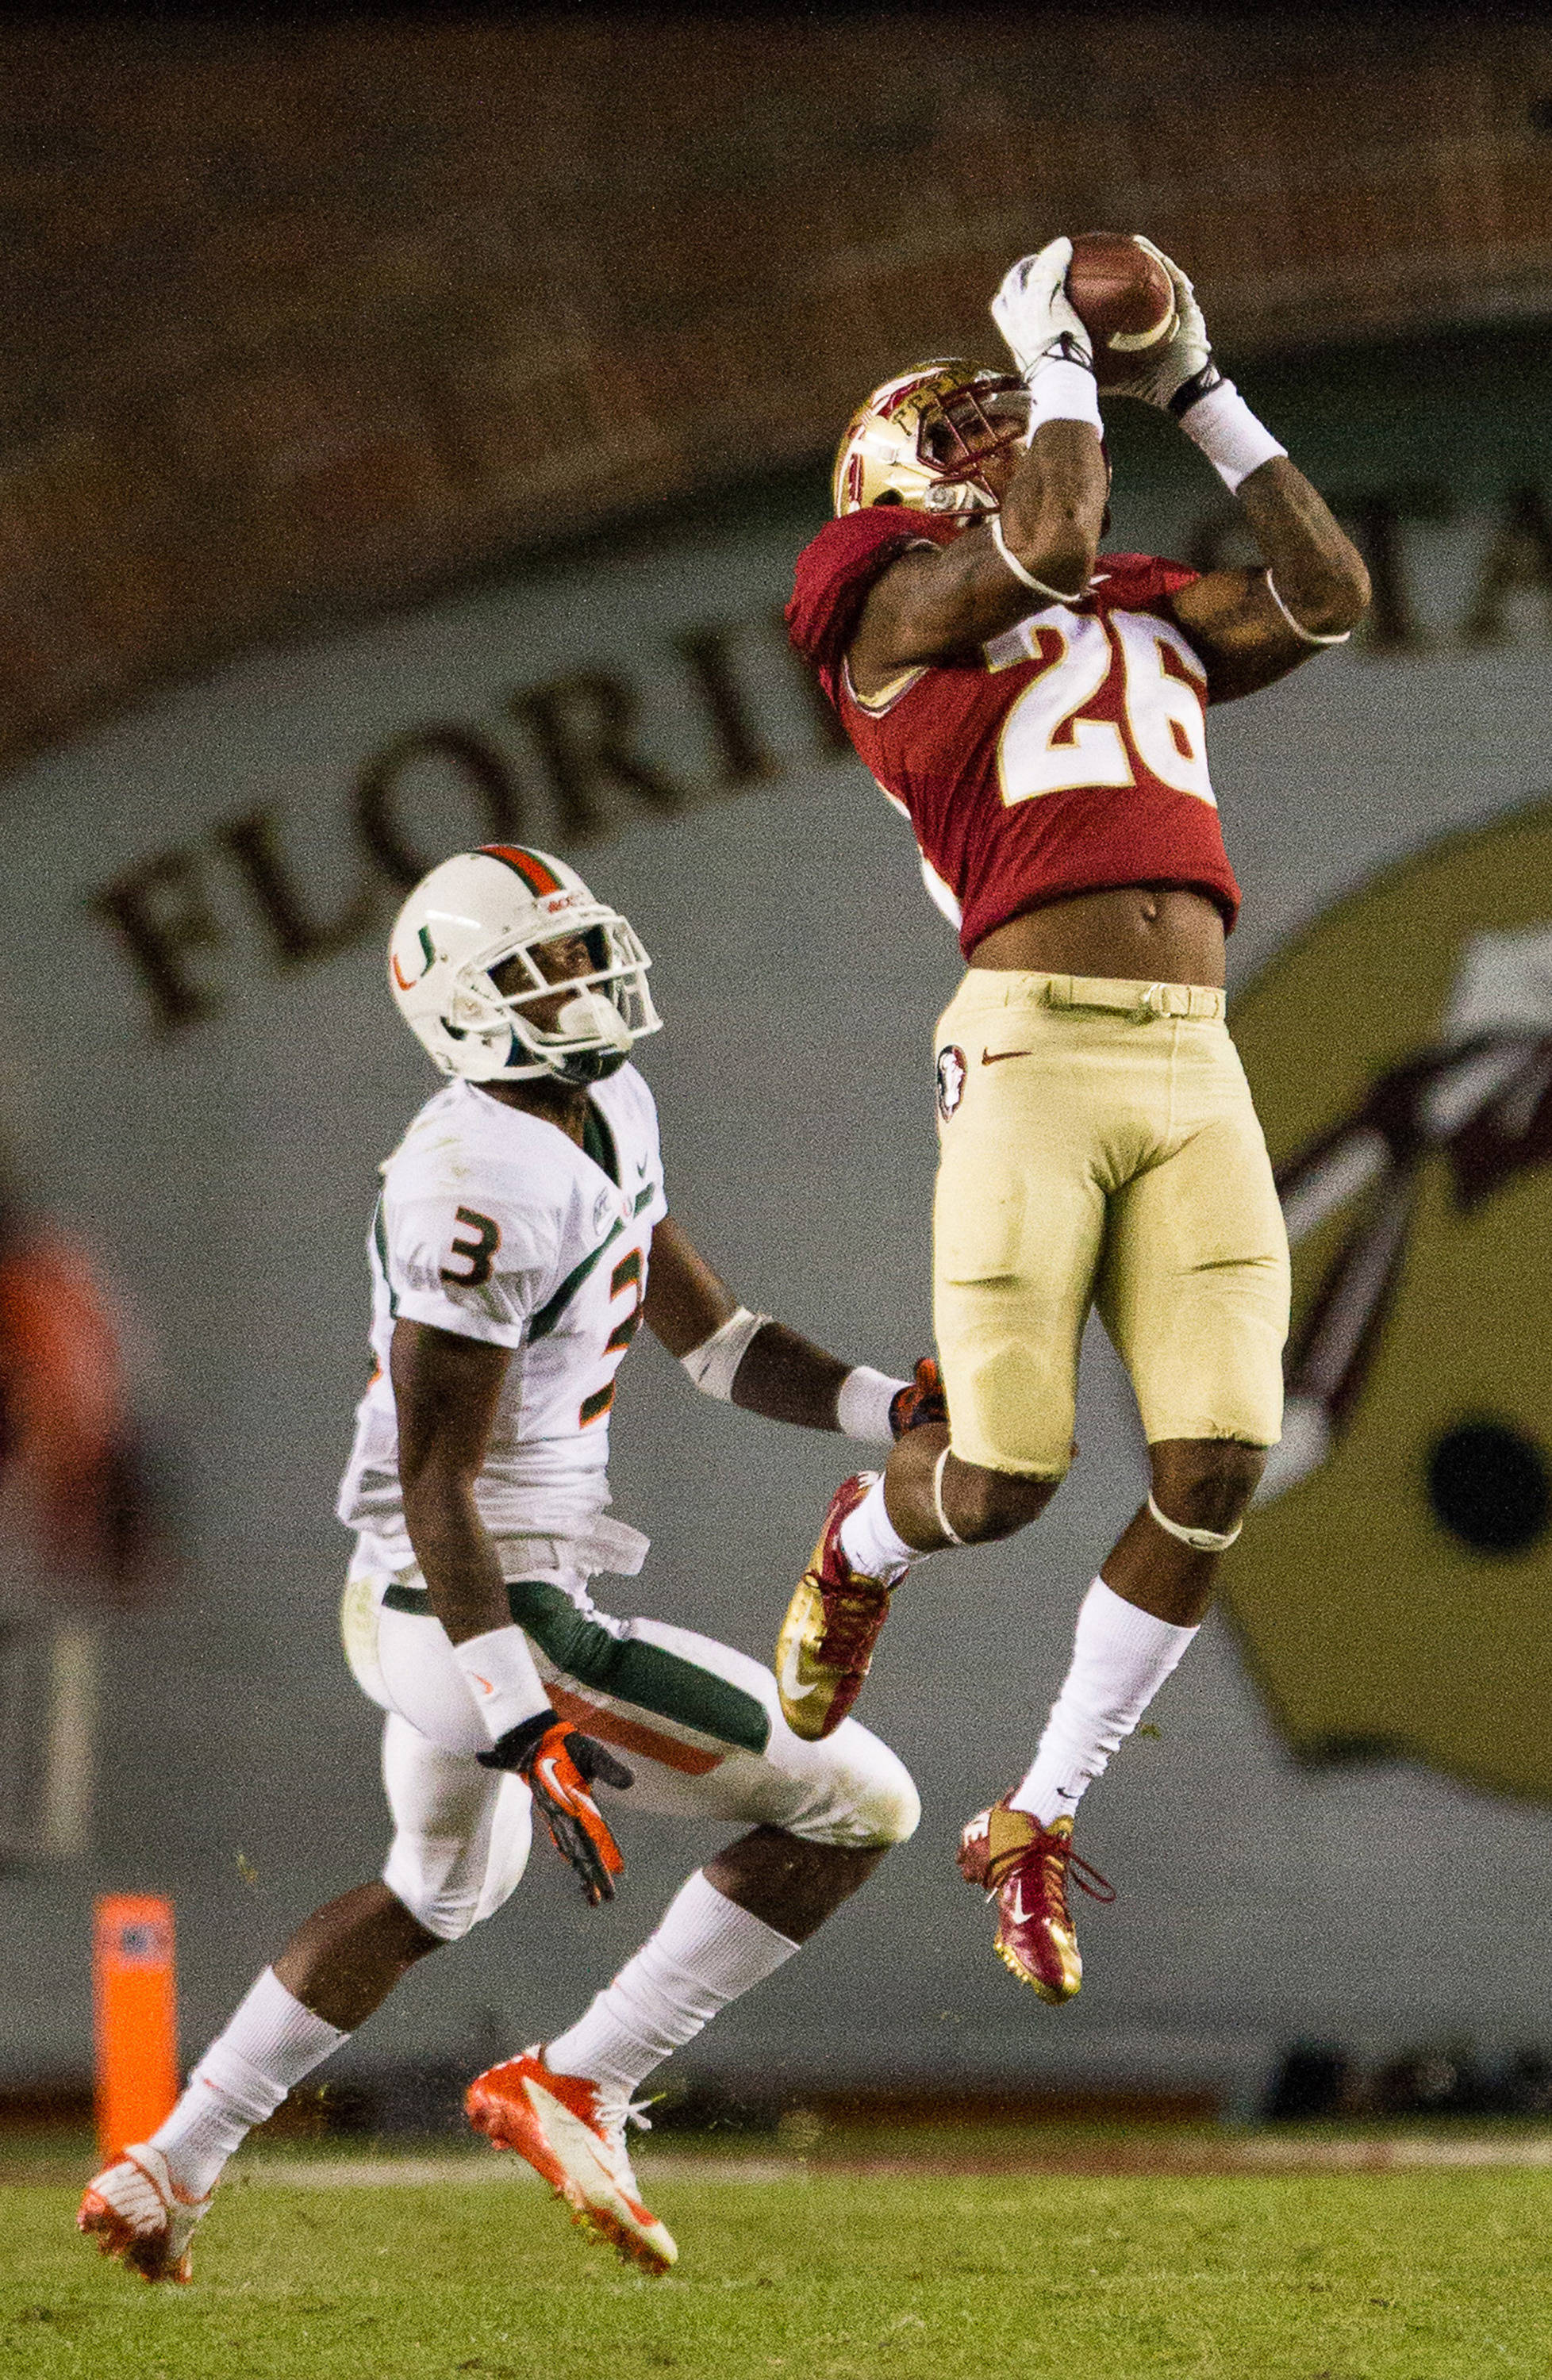 P.J. Williams (26) makes an interception during FSU football's 41-14 win over Miami on Saturday, November 2, 2013 in Tallahassee, Fla. Photo by Michael Schwarz.